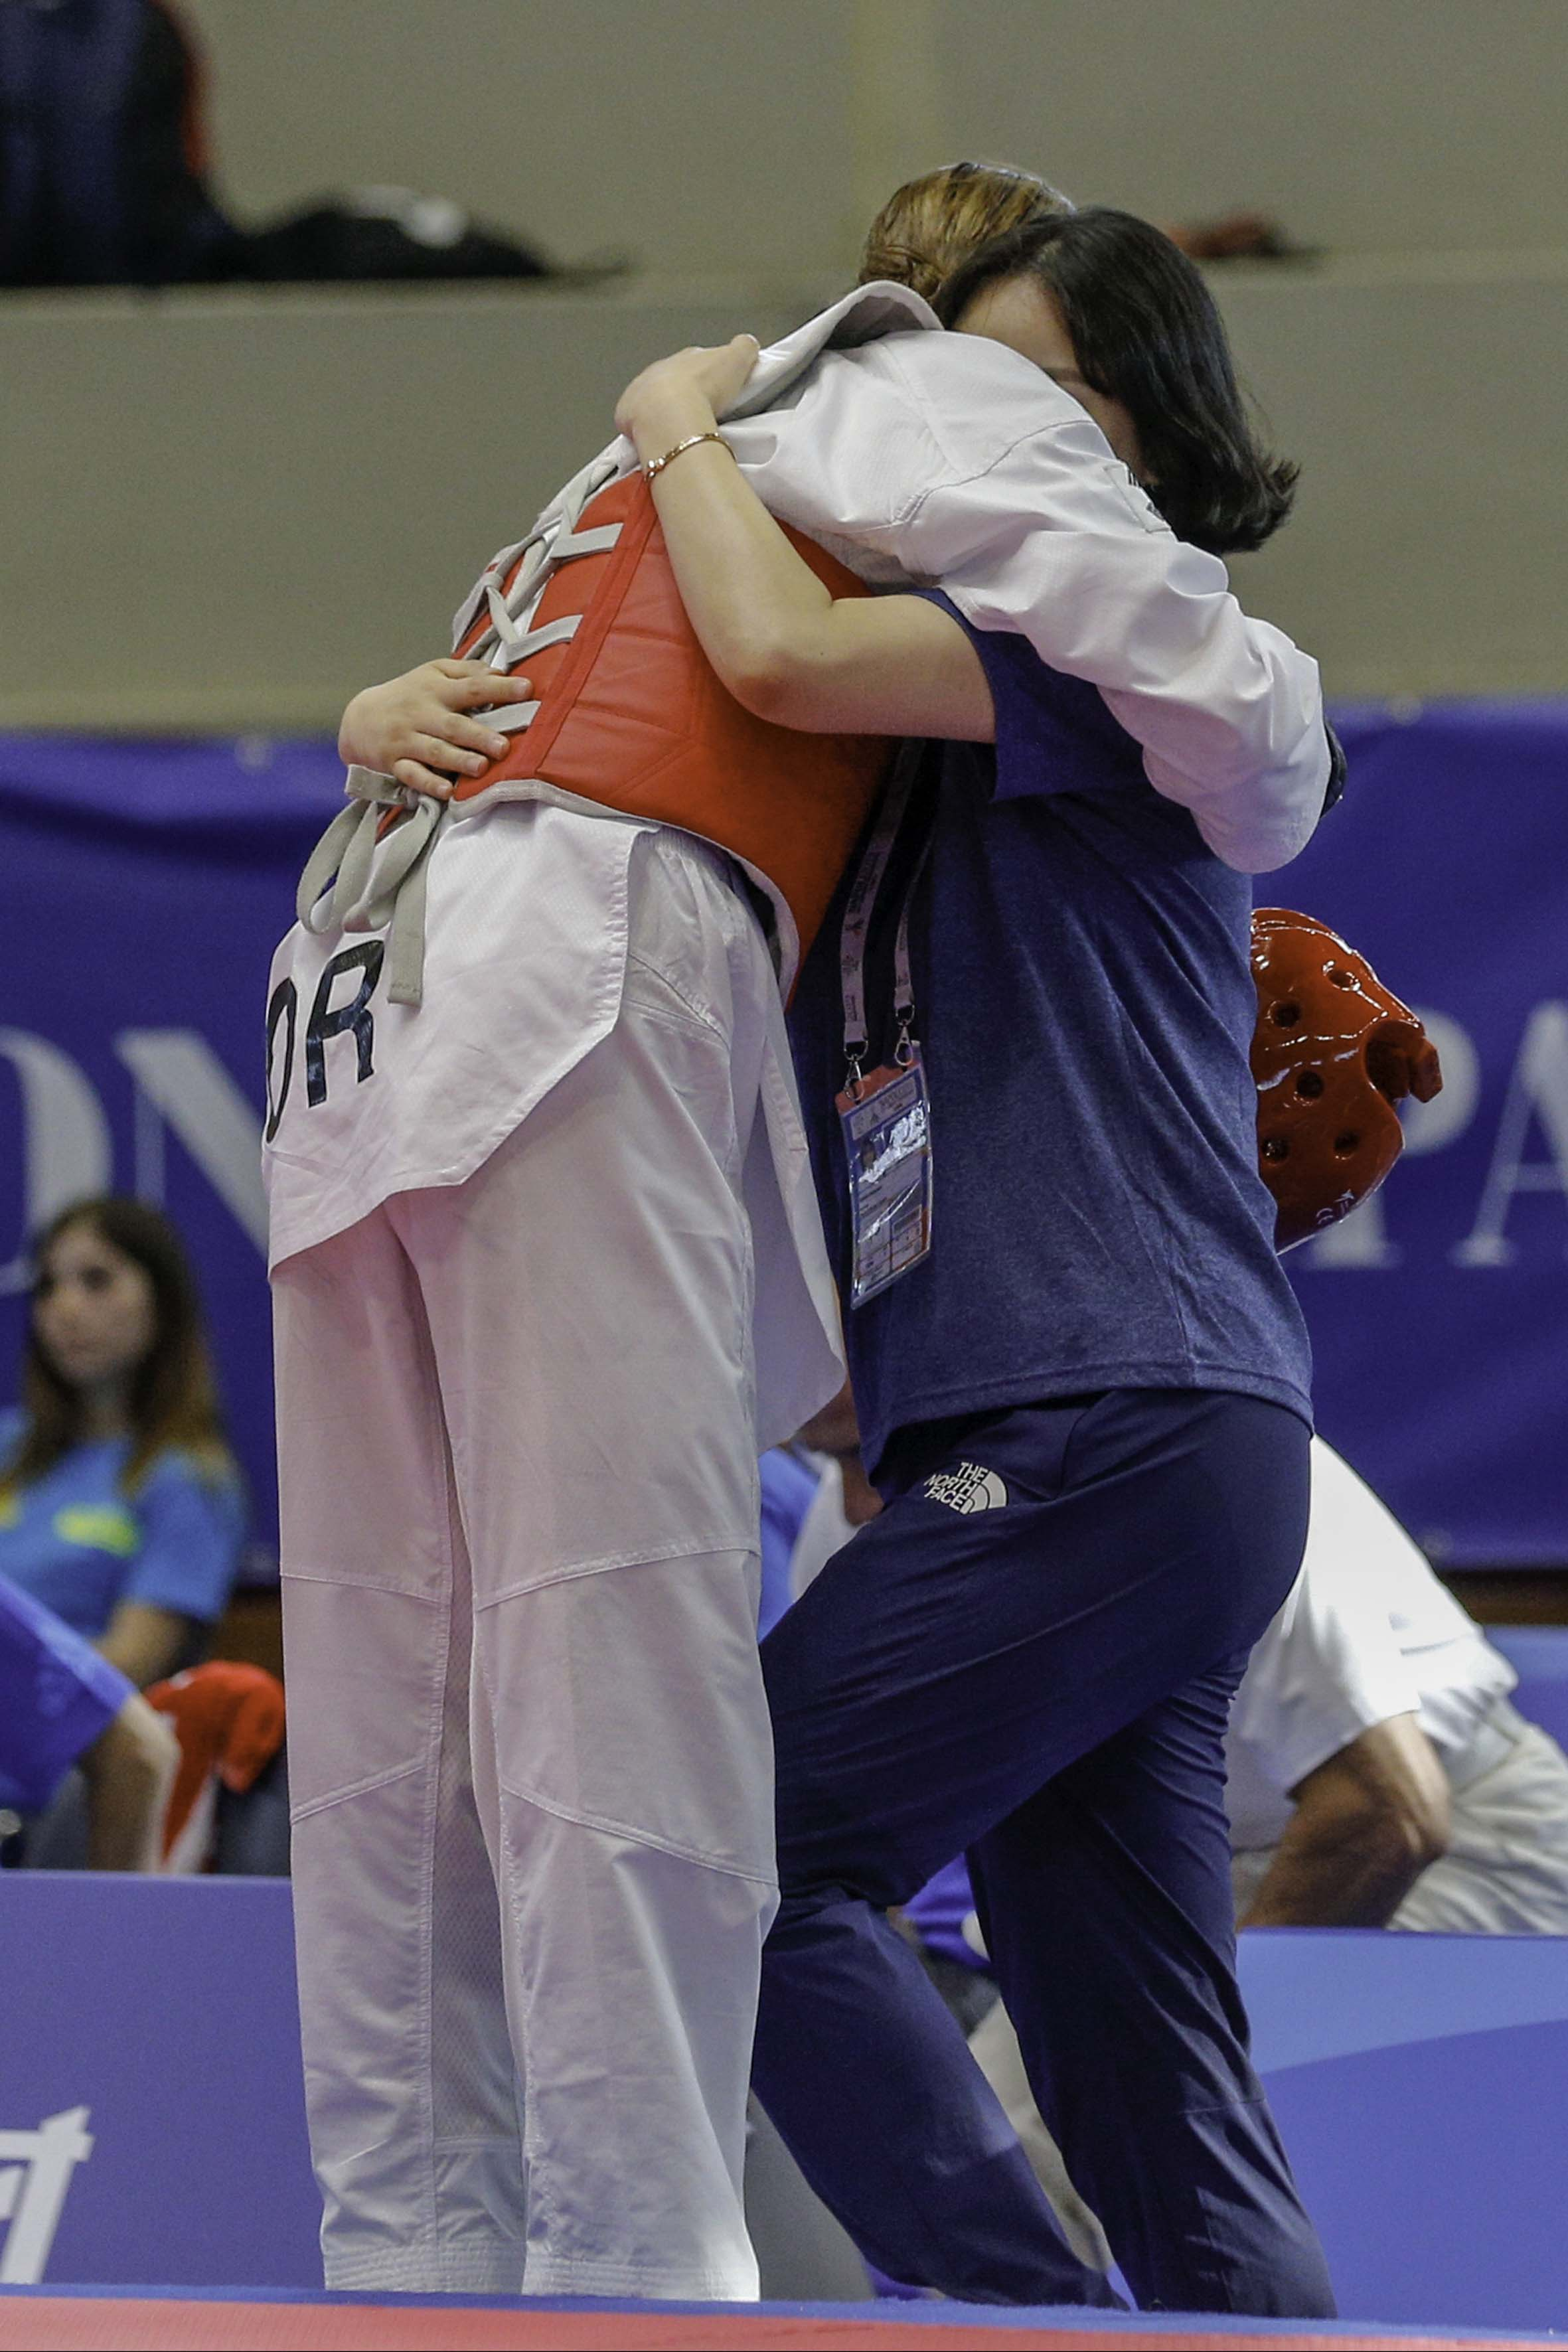 Taekwondo - 09-07-2019 Finali - Pool fotografi universiade 2019